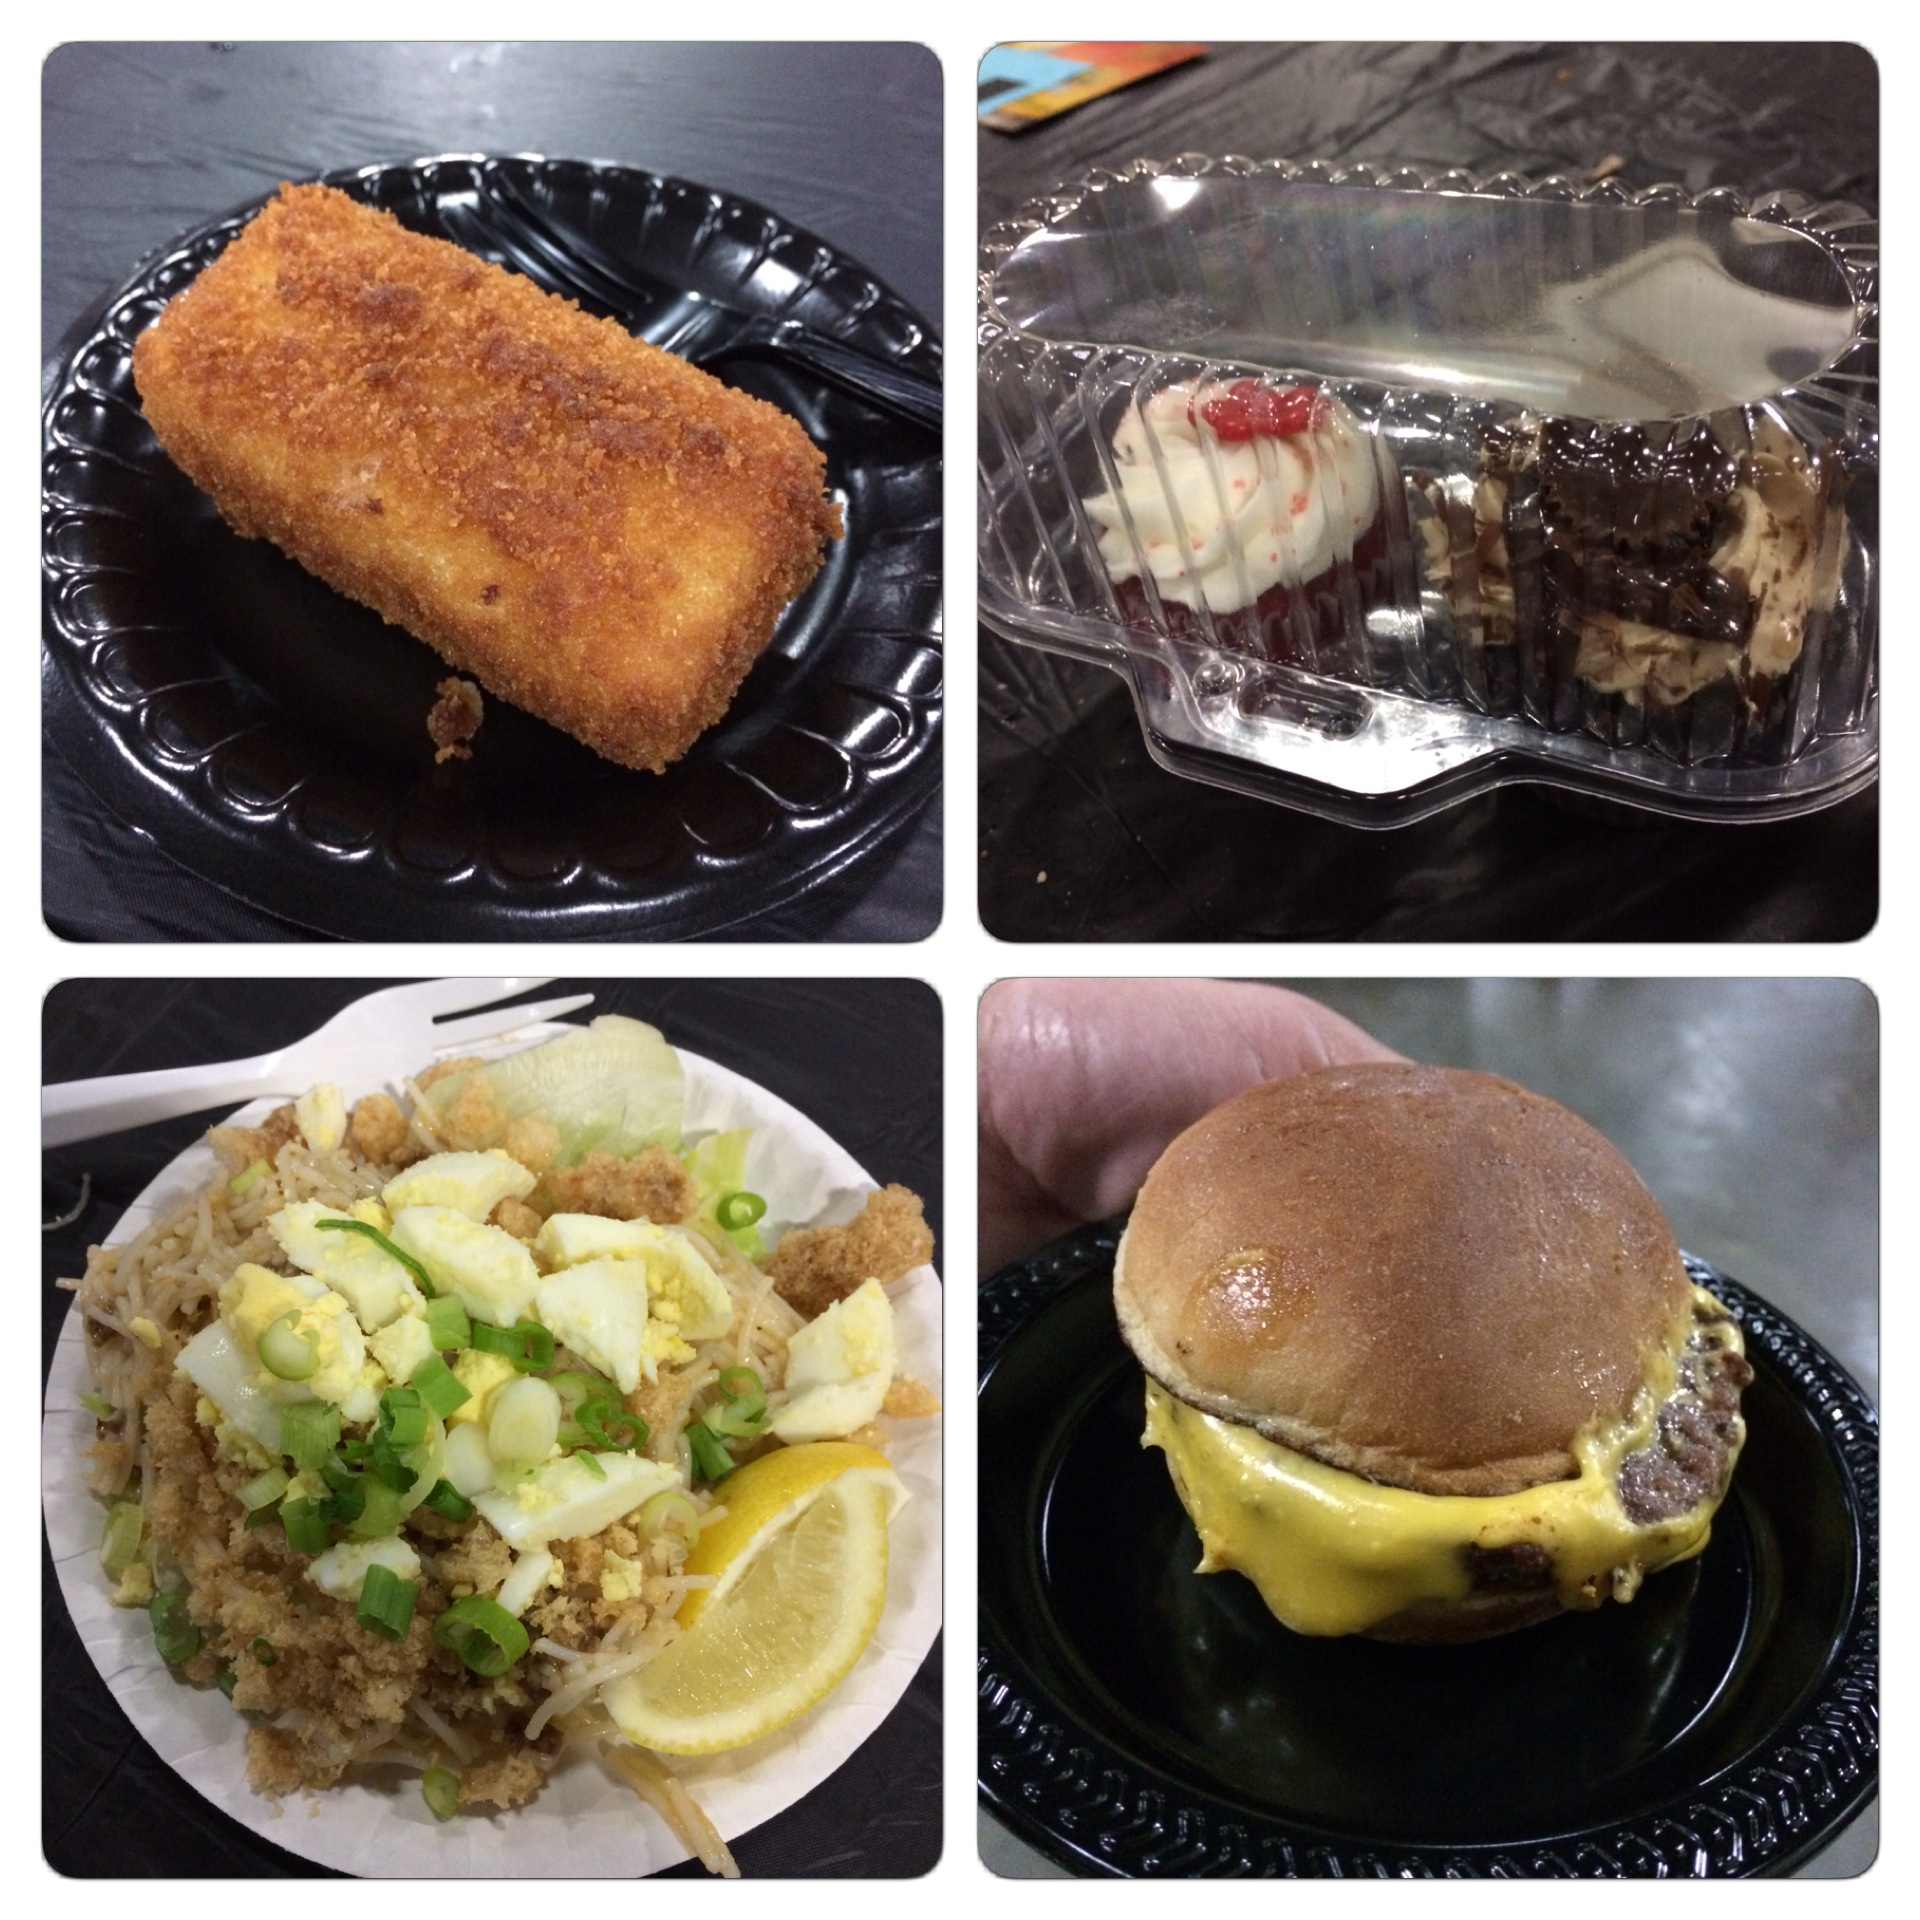 Here is a montage of some more of the items we ate. The top left hand image is the deep fried macaroni and cheese. The top right photo are the cupcakes...I had a peanut butter cake while Sidney had red velvet. The bottom right hand photo is a cheeseburger (River City Grill), and the bottom left image is the